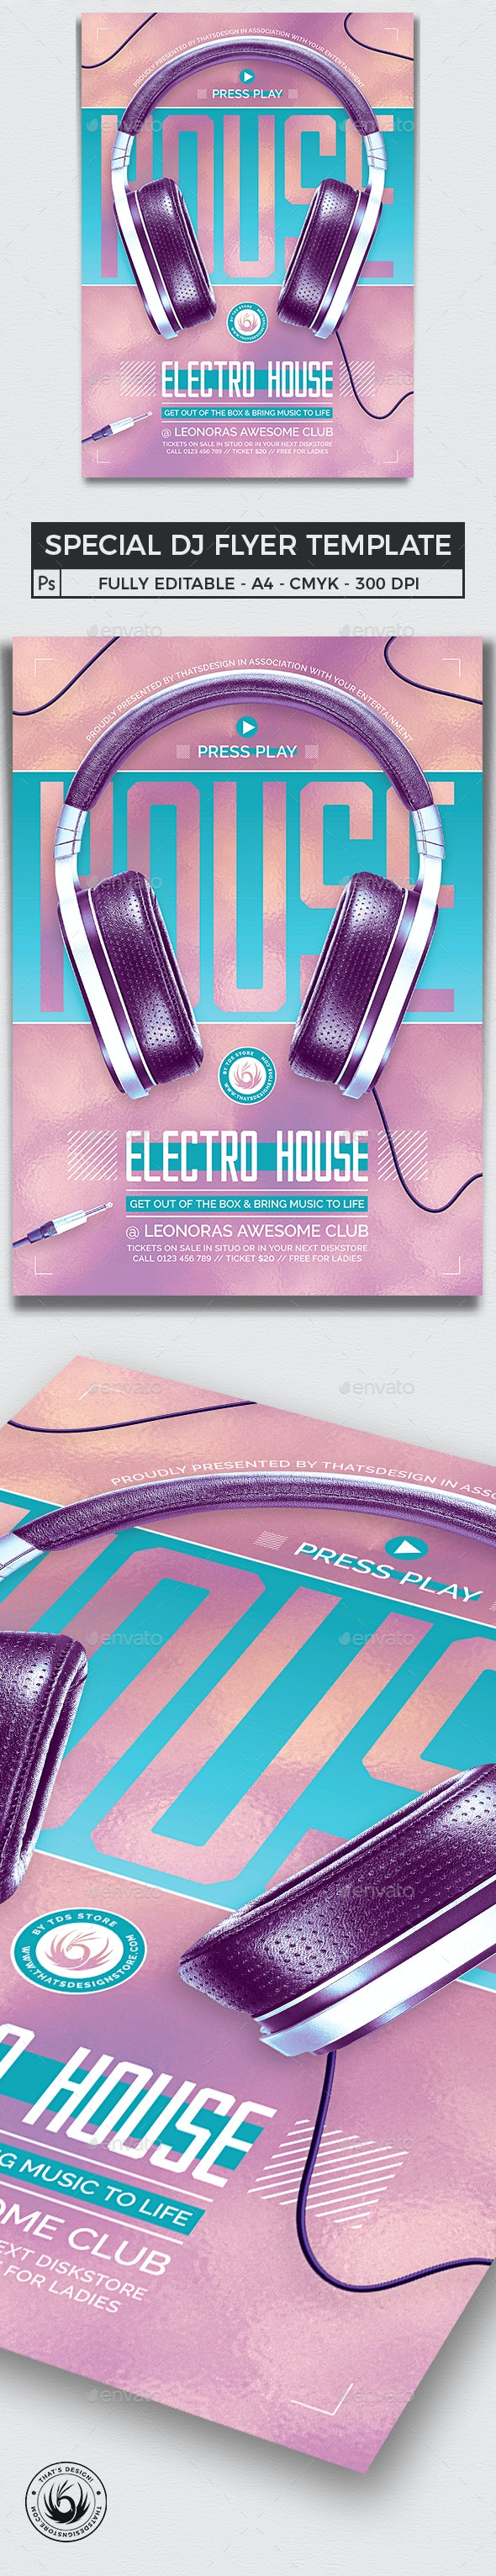 Special Dj Flyer Template V7 - Clubs & Parties Events